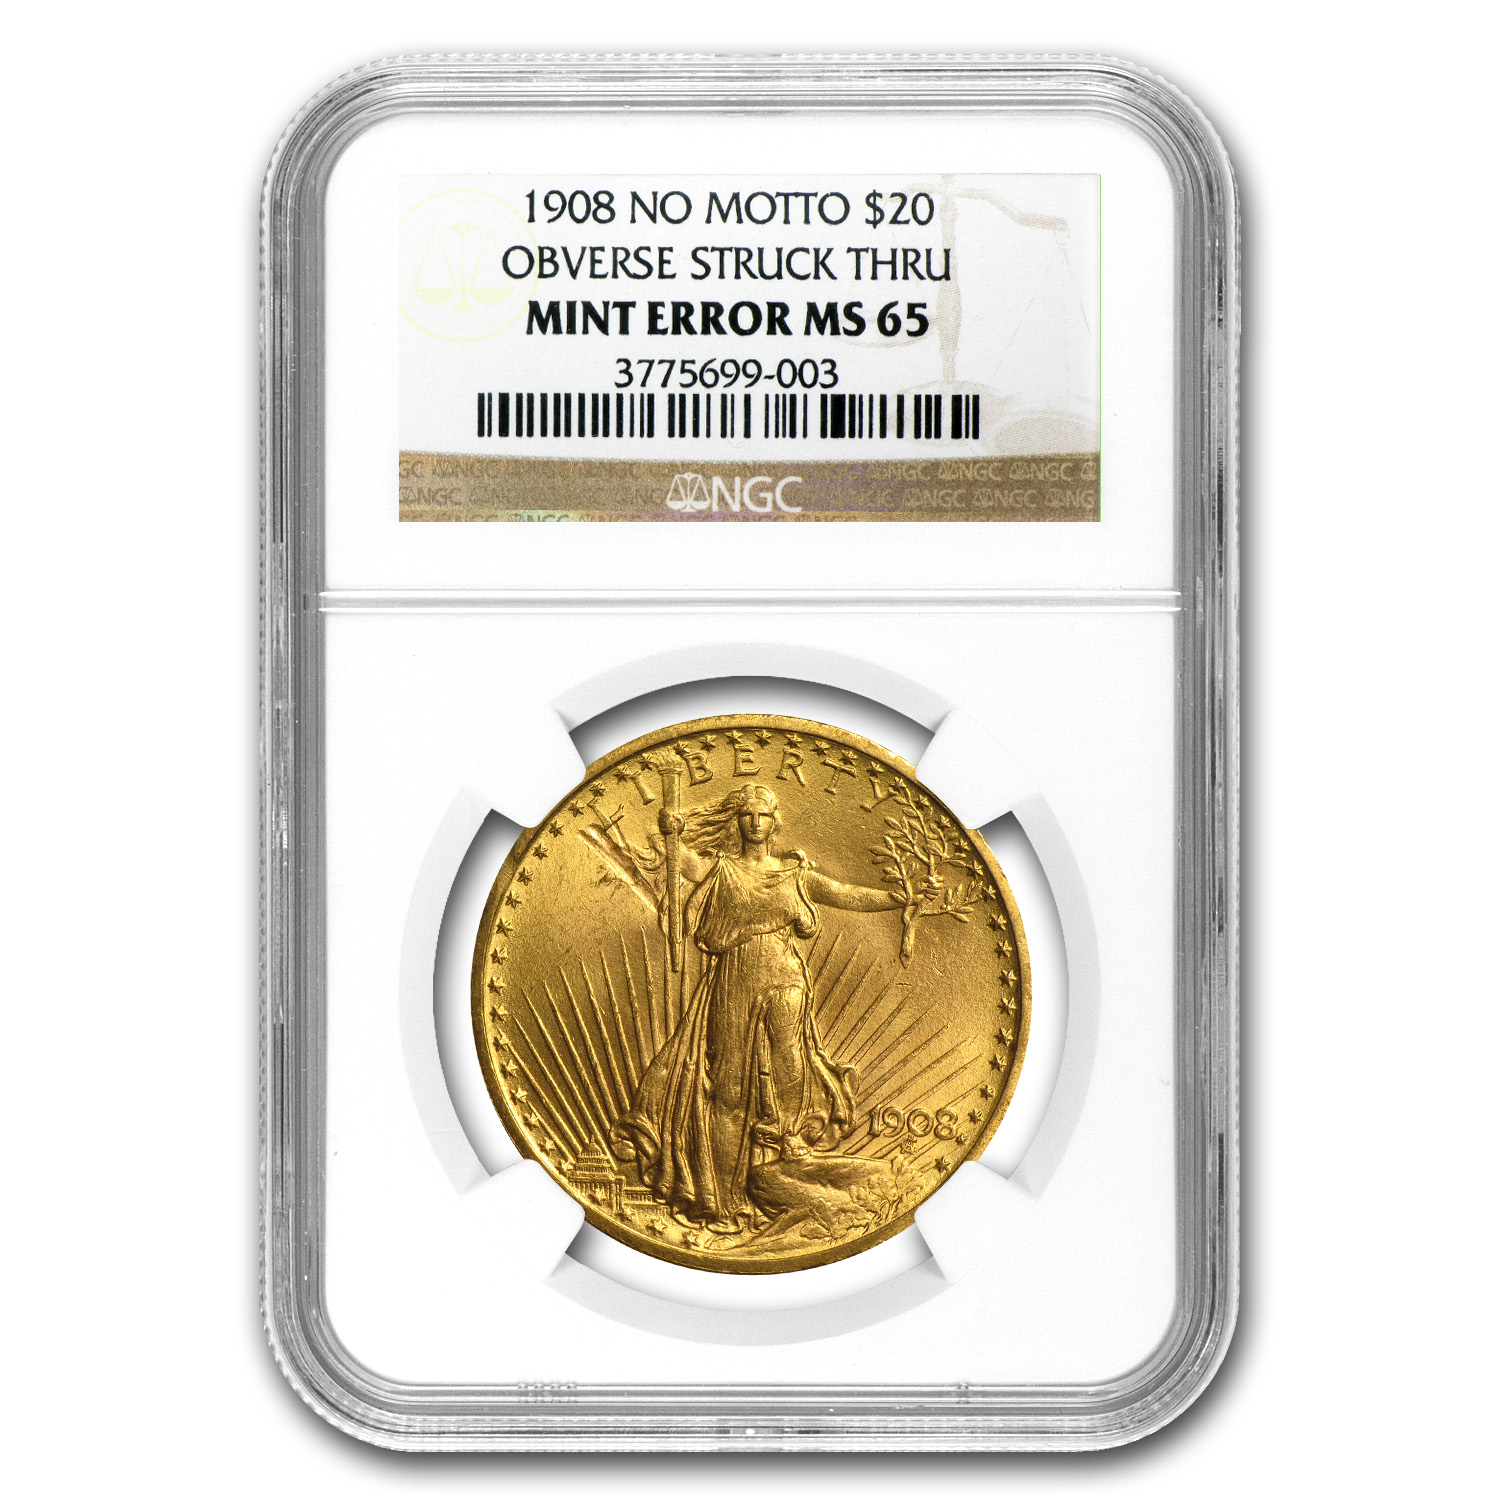 1908 $20 St. Gaudens Gold - No Motto - MS-65 NGC (Mint Error)